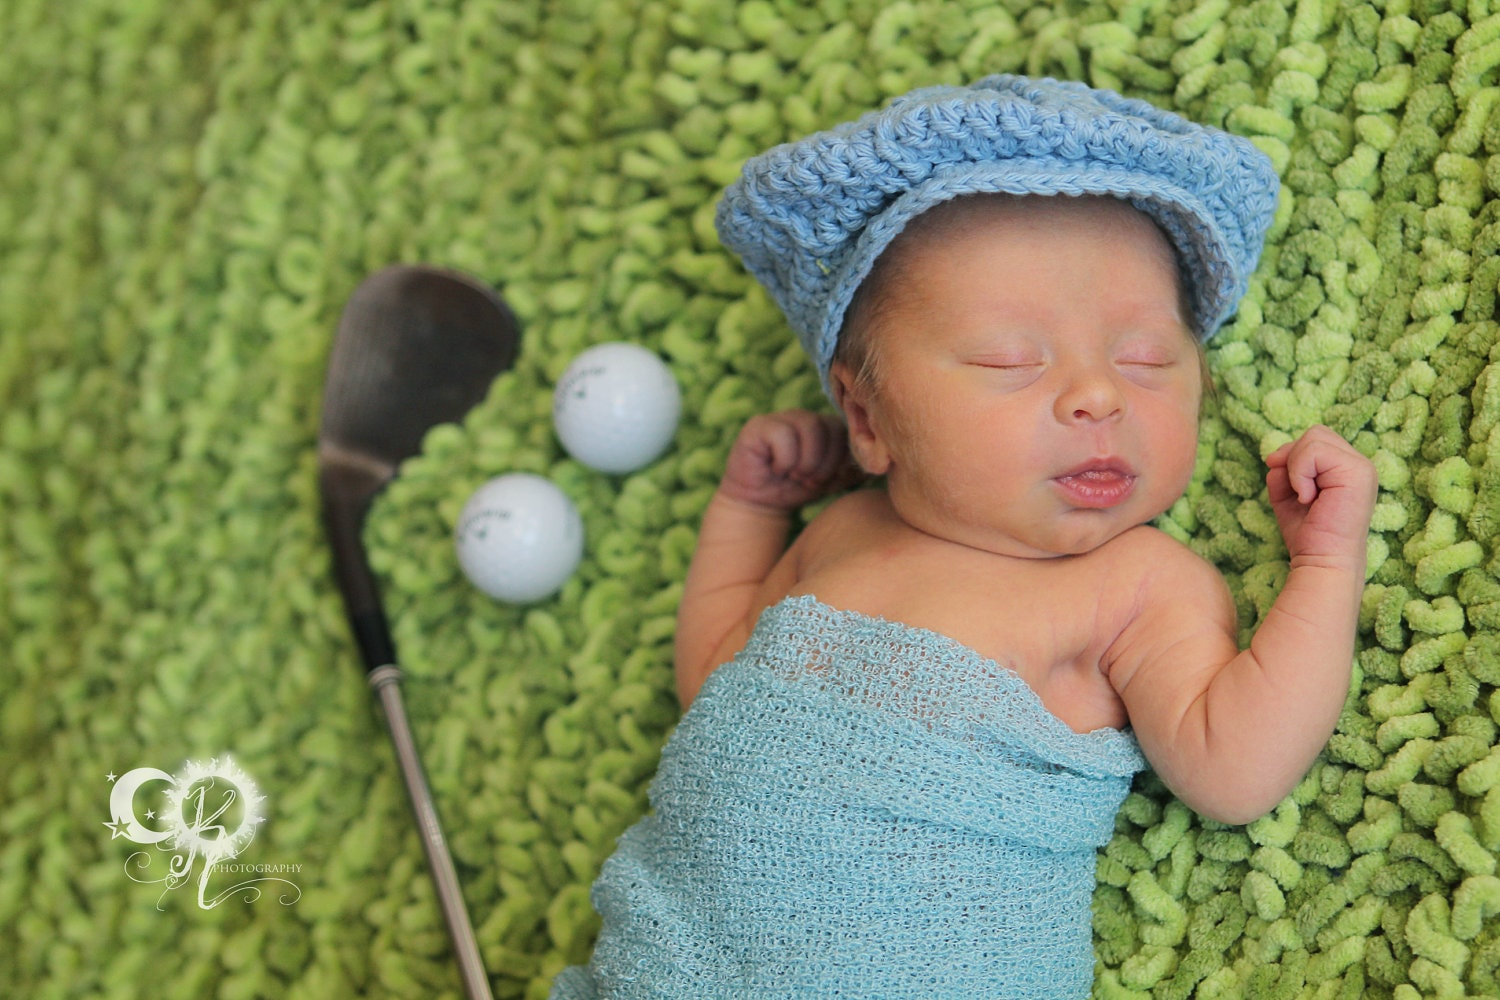 Thanks so much for rushing our order. I am purchasing the baby golf shoes for a couple that is having a baby in Feb. His vacations are spent at Pinehurst Golf Resort, The Homestead, etc., and they are having a boy.